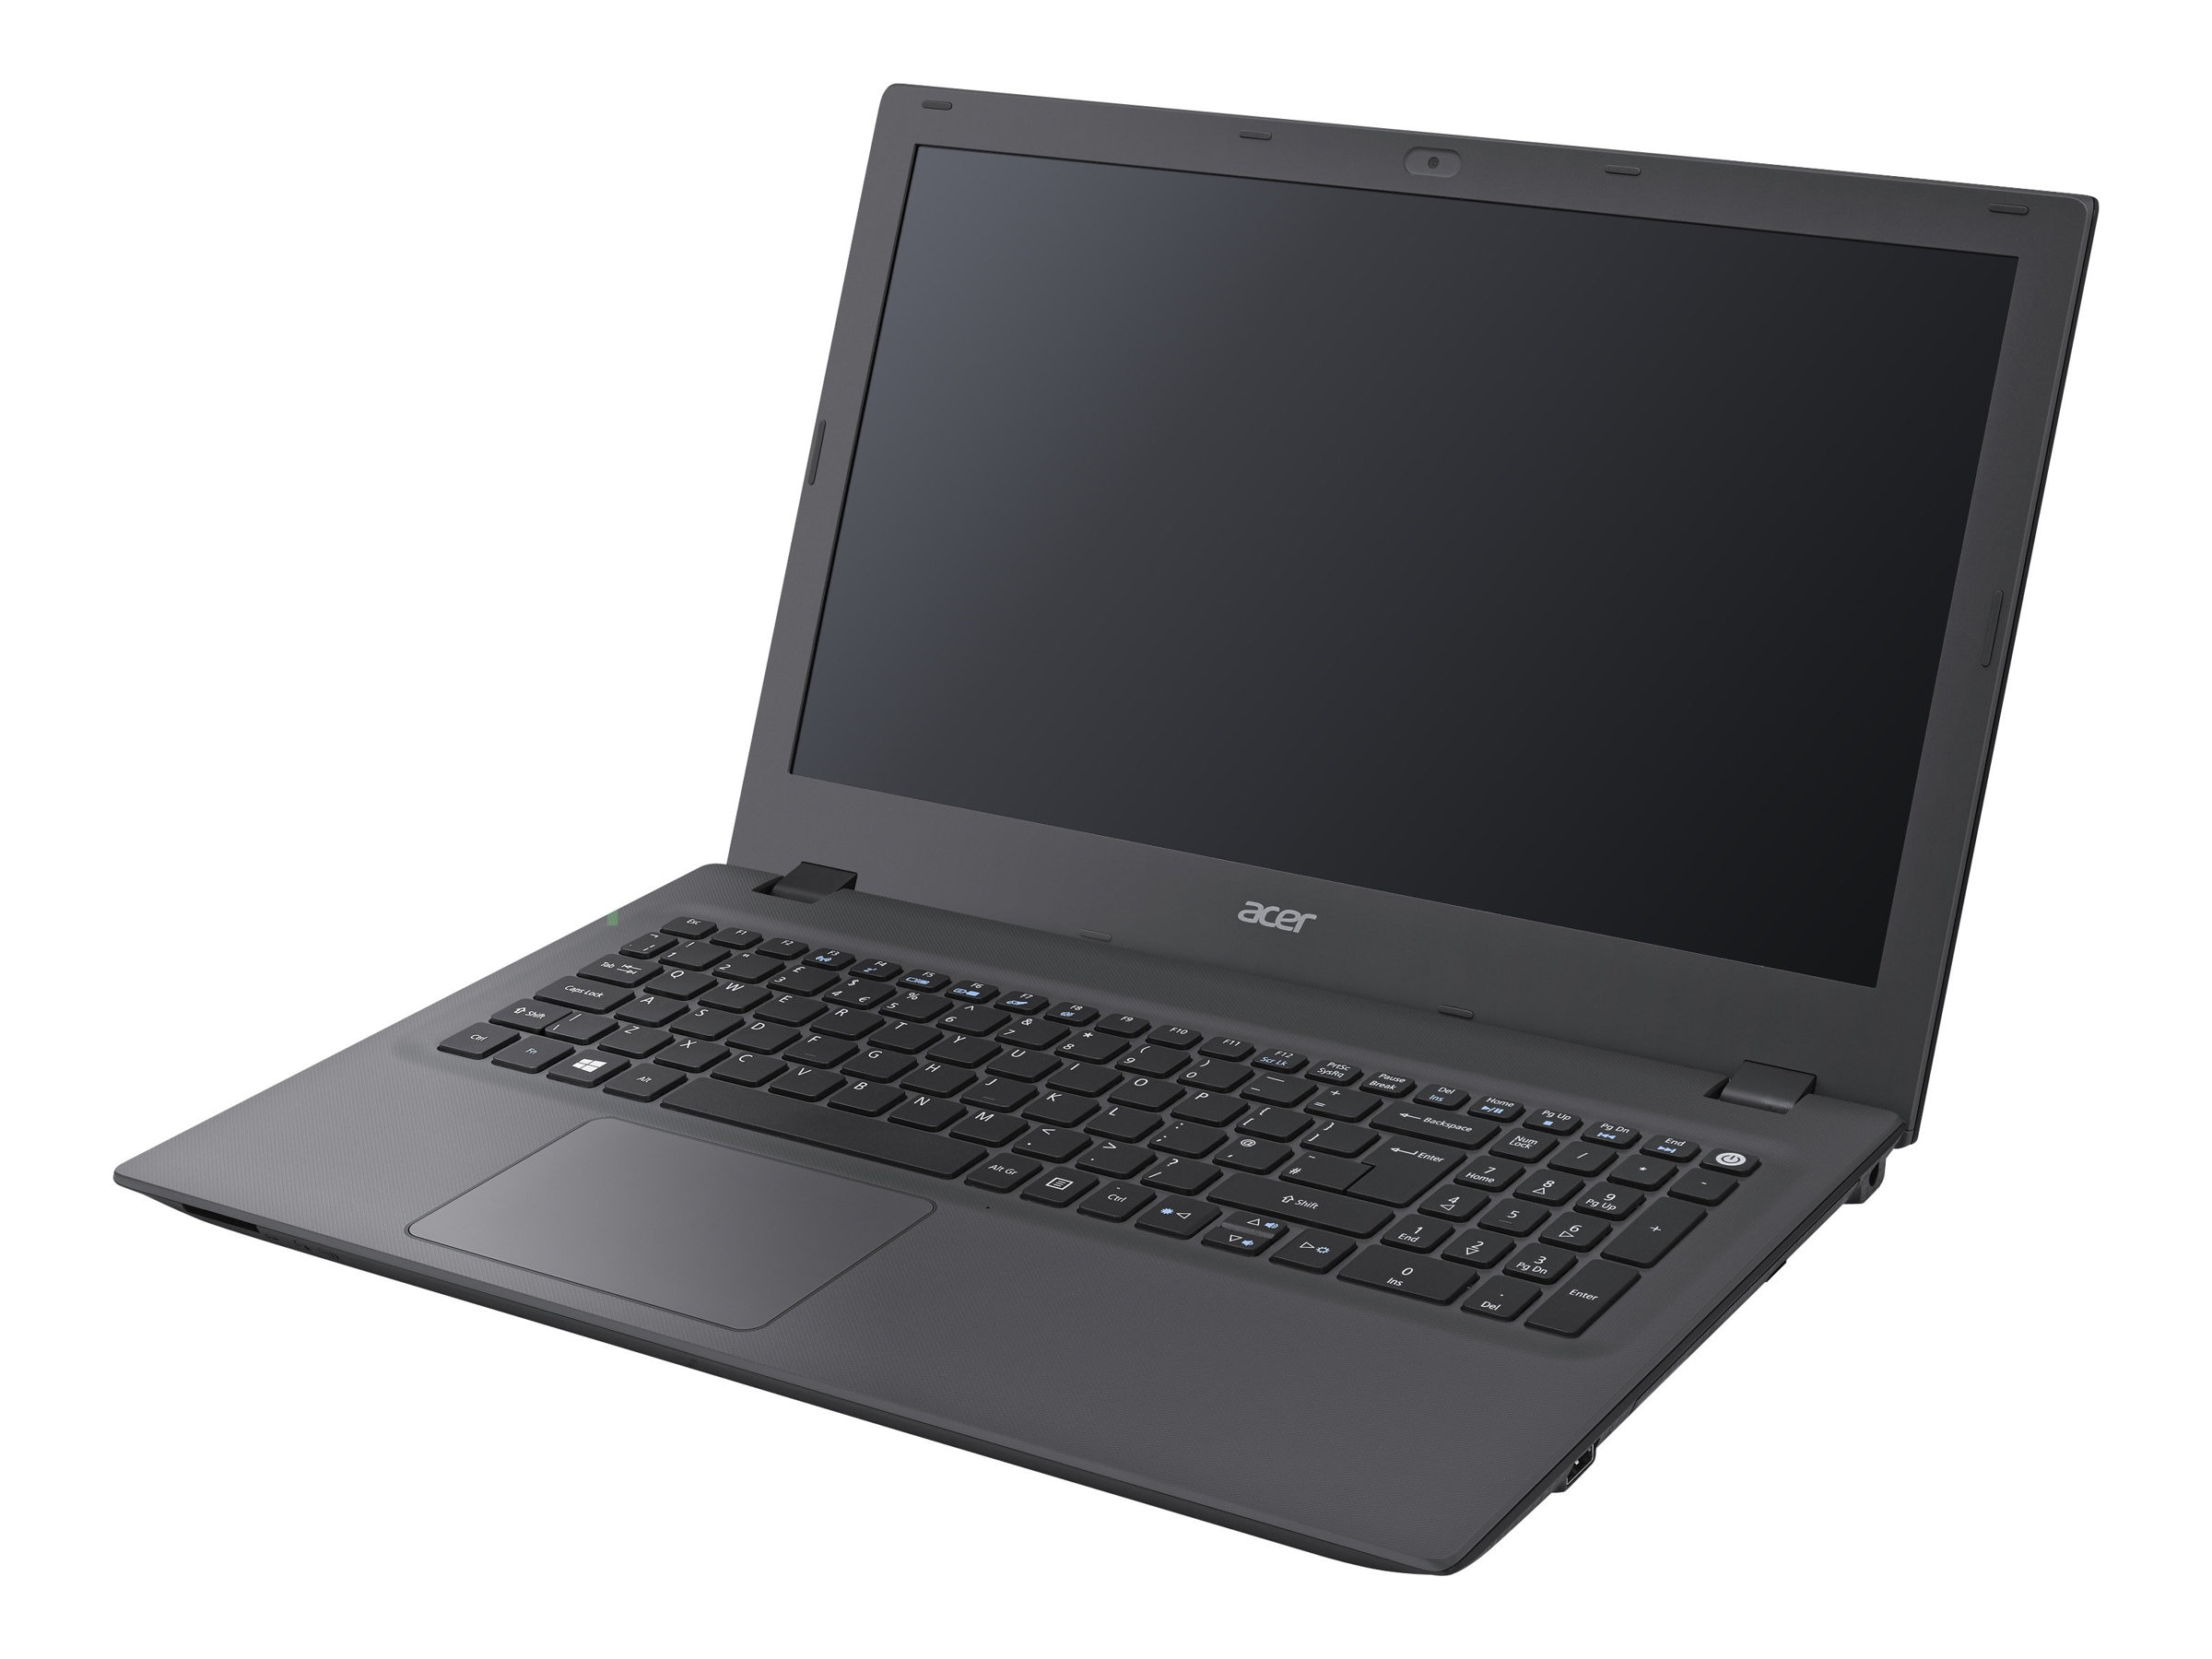 Acer Notebook PC Core i5 8GB 1TB 15 Touch W10, NX.MW1AA.003, 30736131, Notebooks